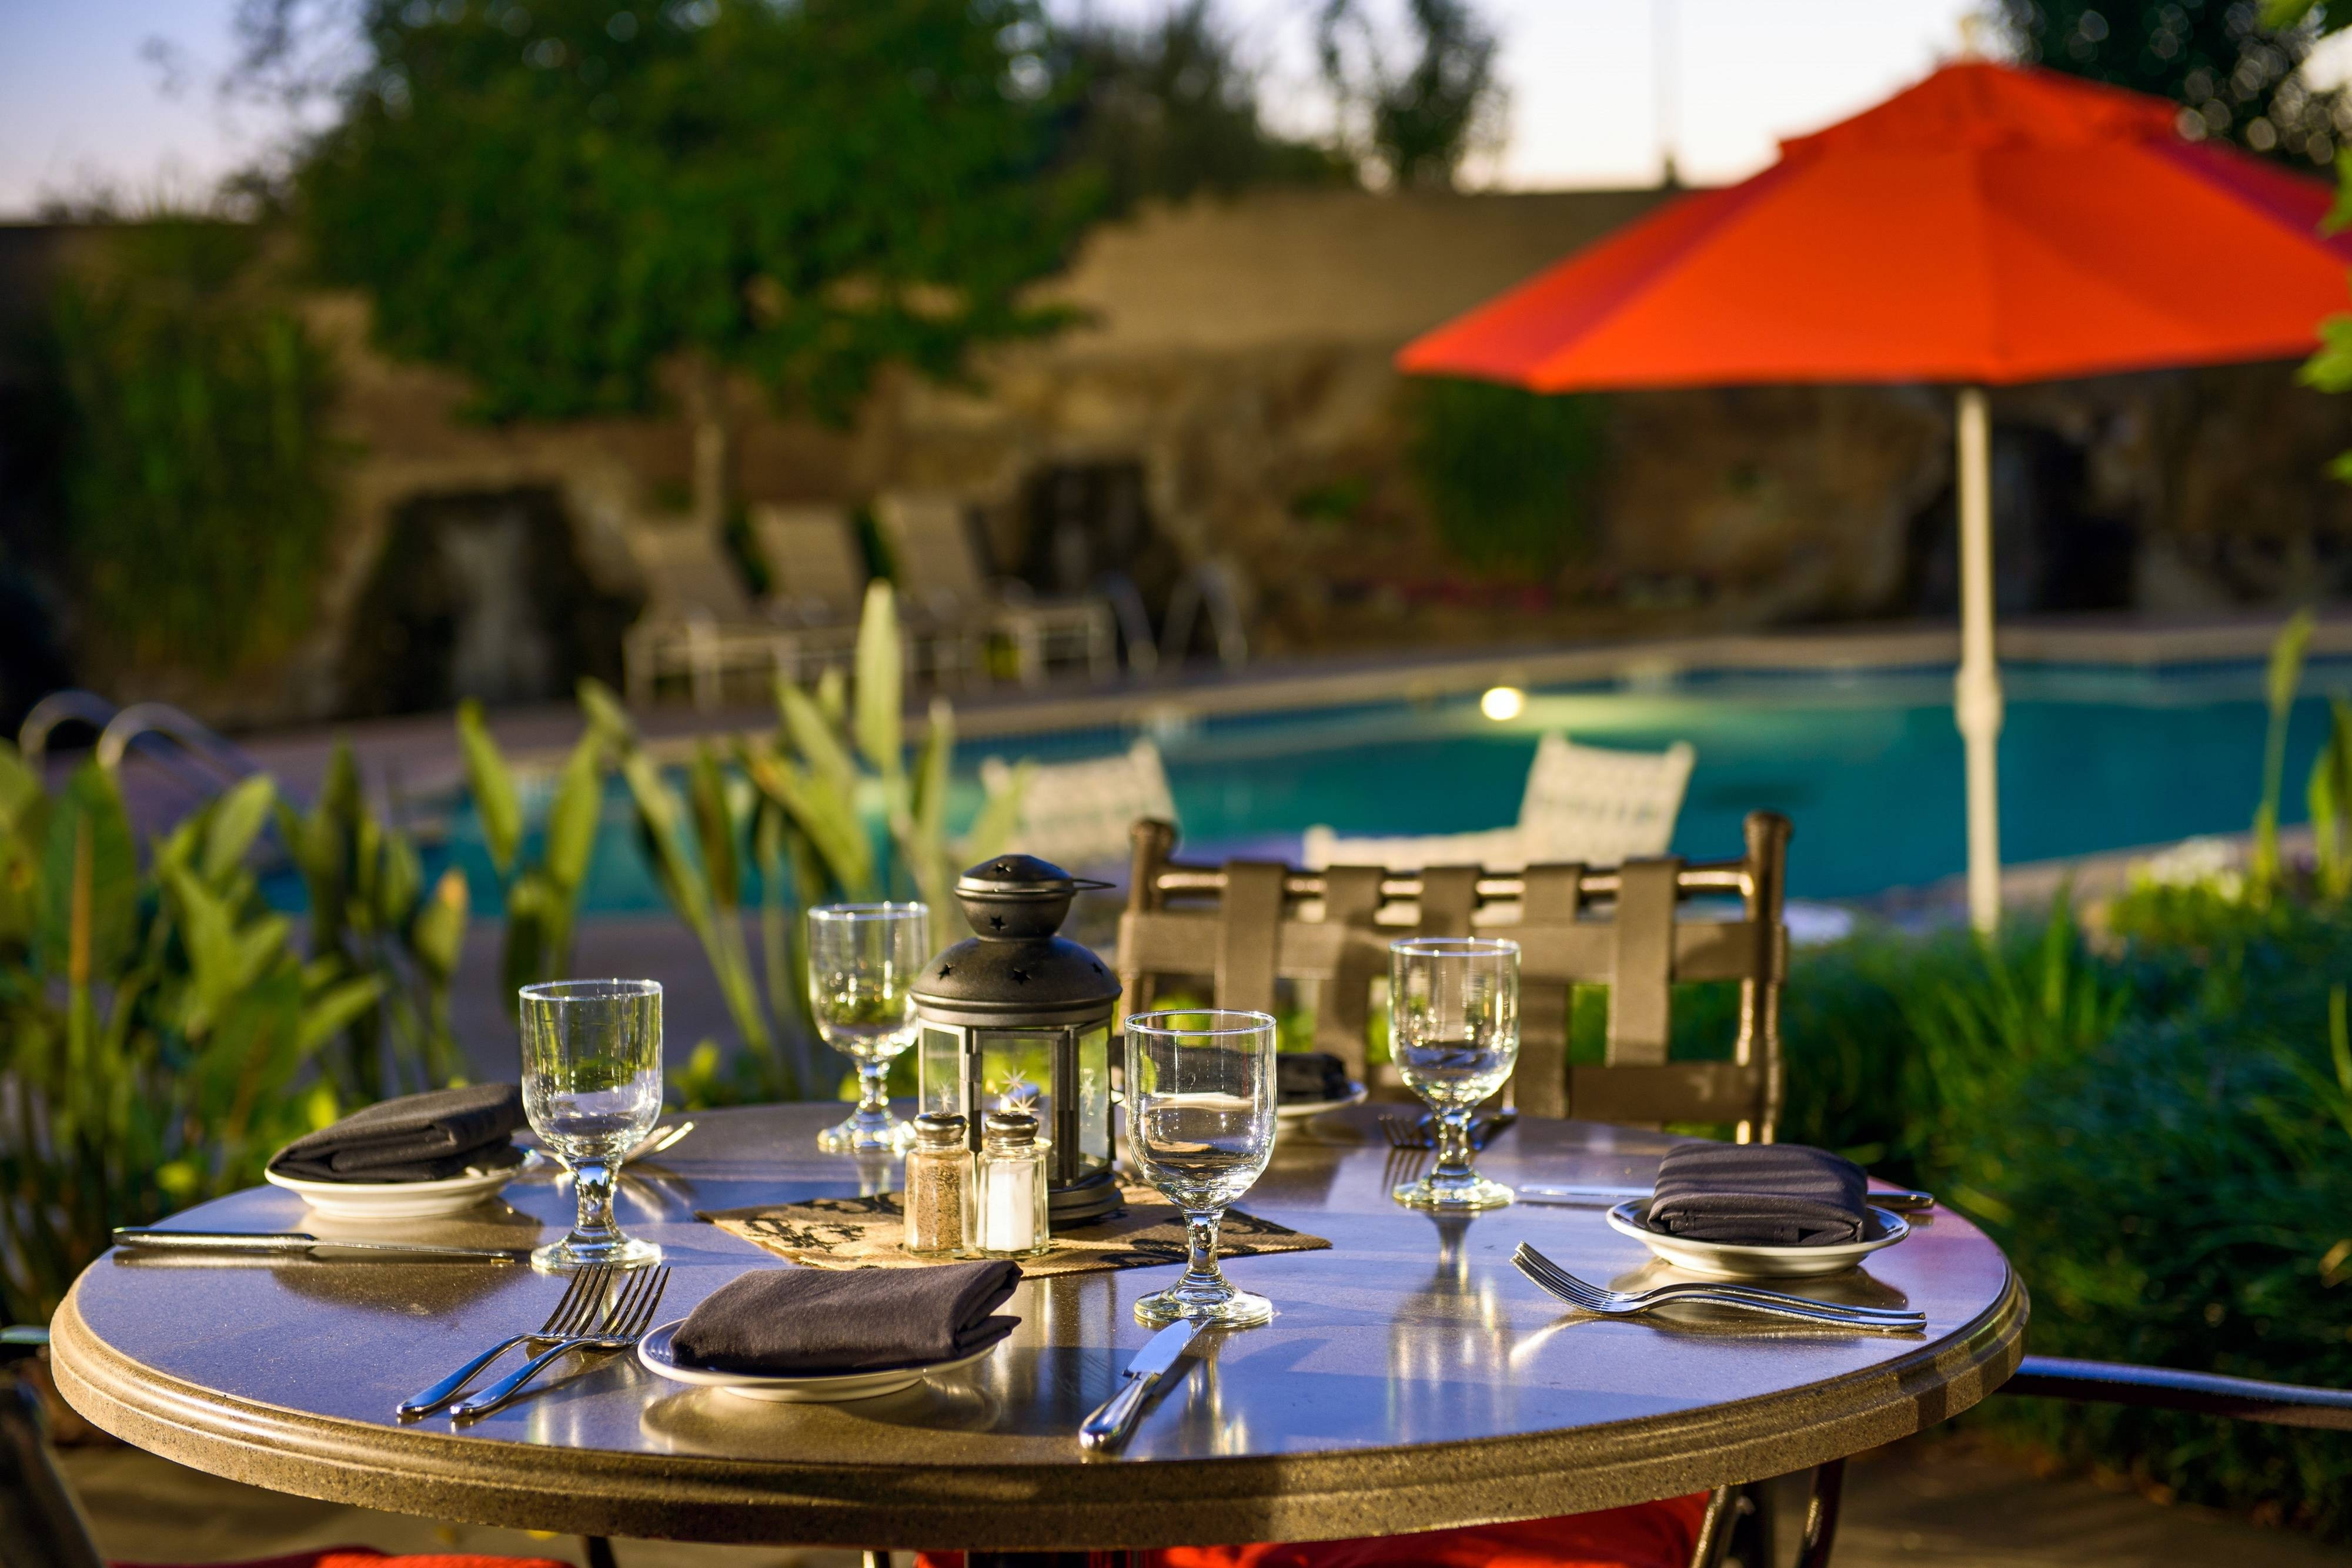 Pictures Of Hotels In Or Near Rancho Cordova Take A